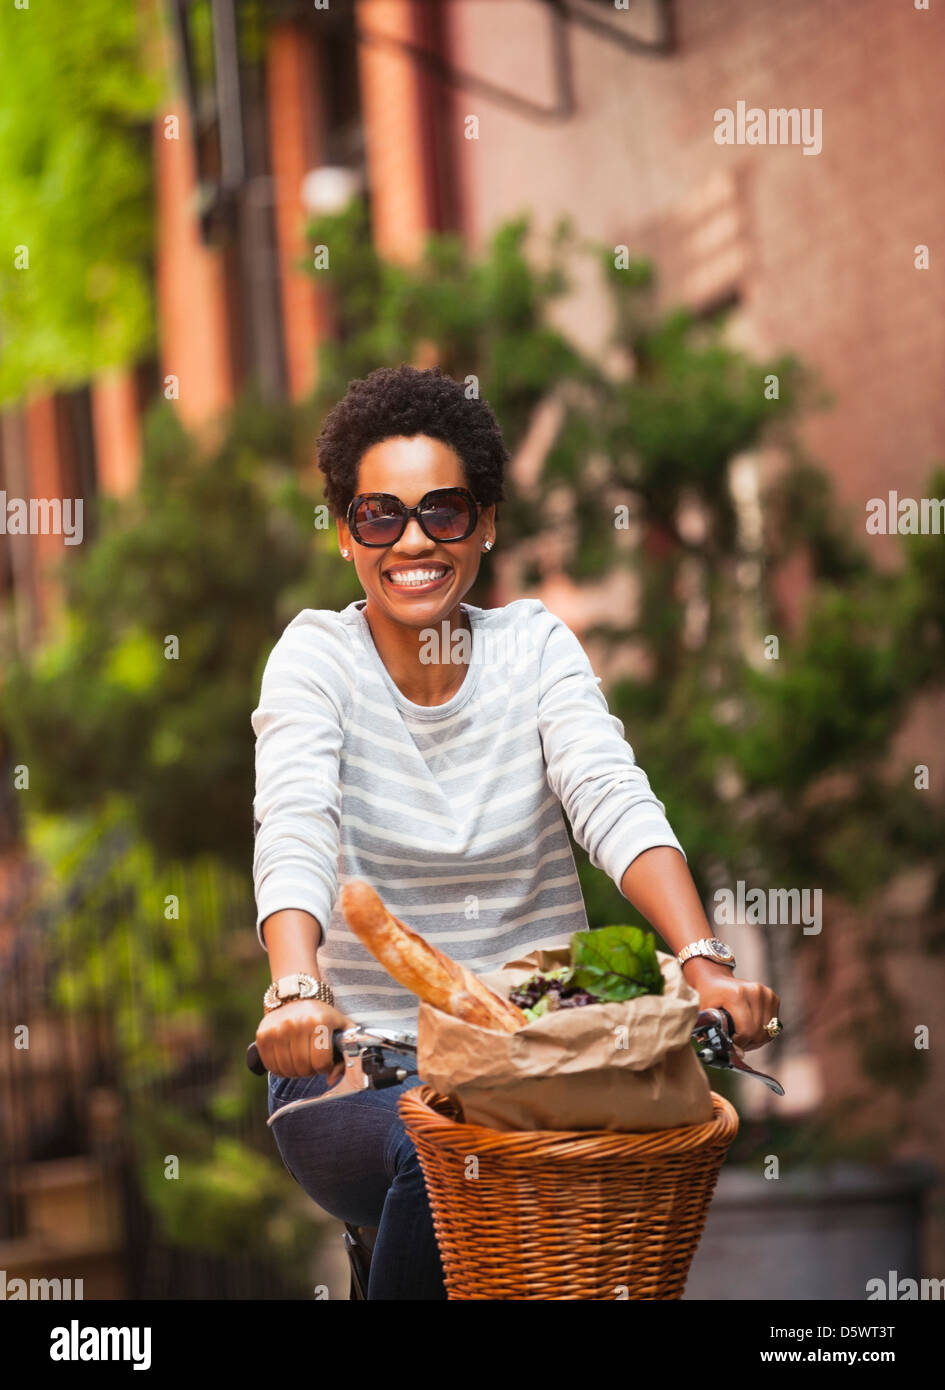 Woman riding bicycle on city street - Stock Image